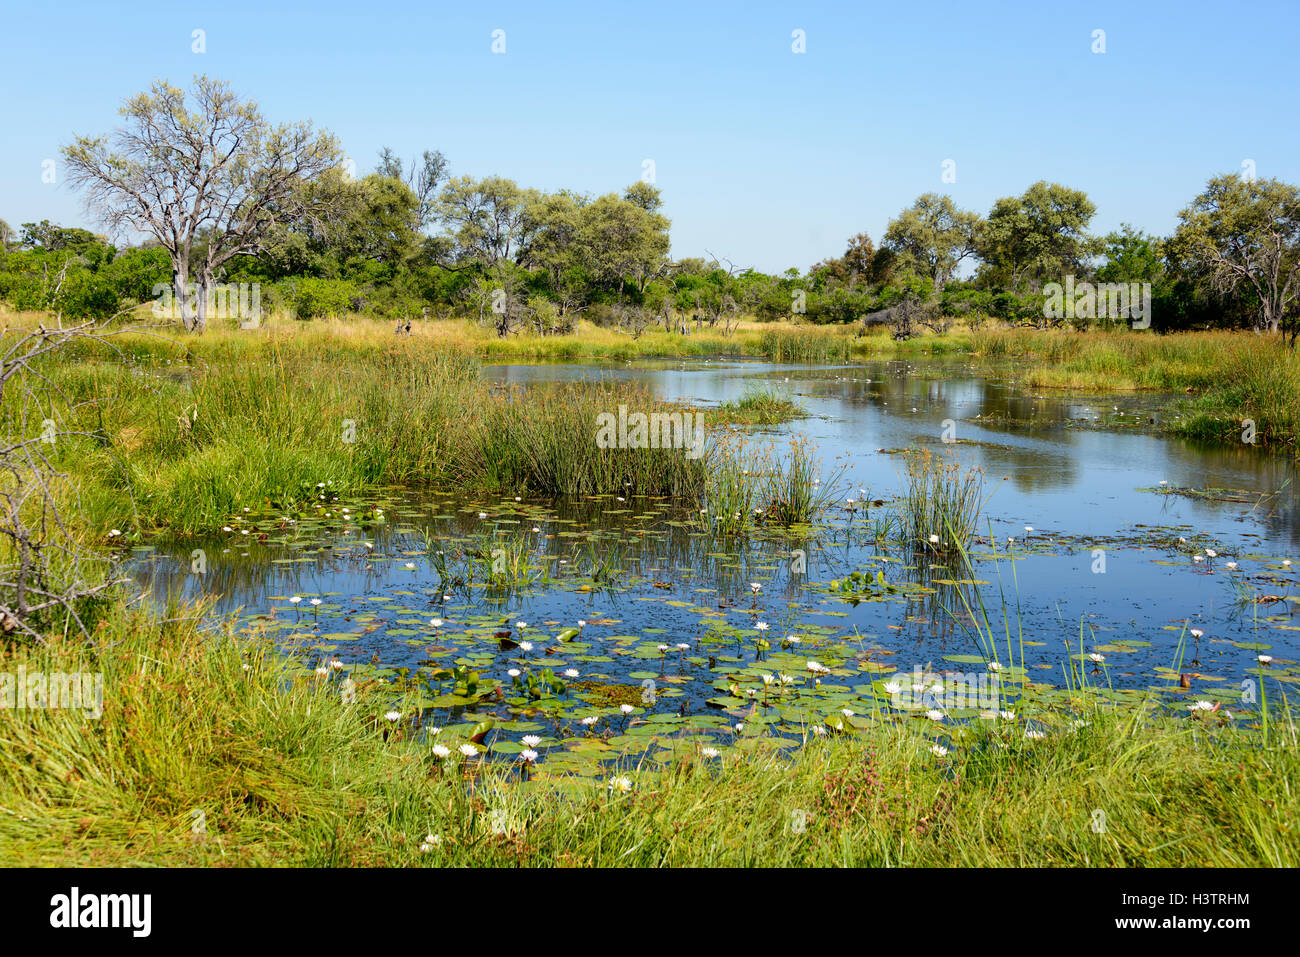 Khwai River with water lilies, near Mababe Village, Botswana - Stock Image